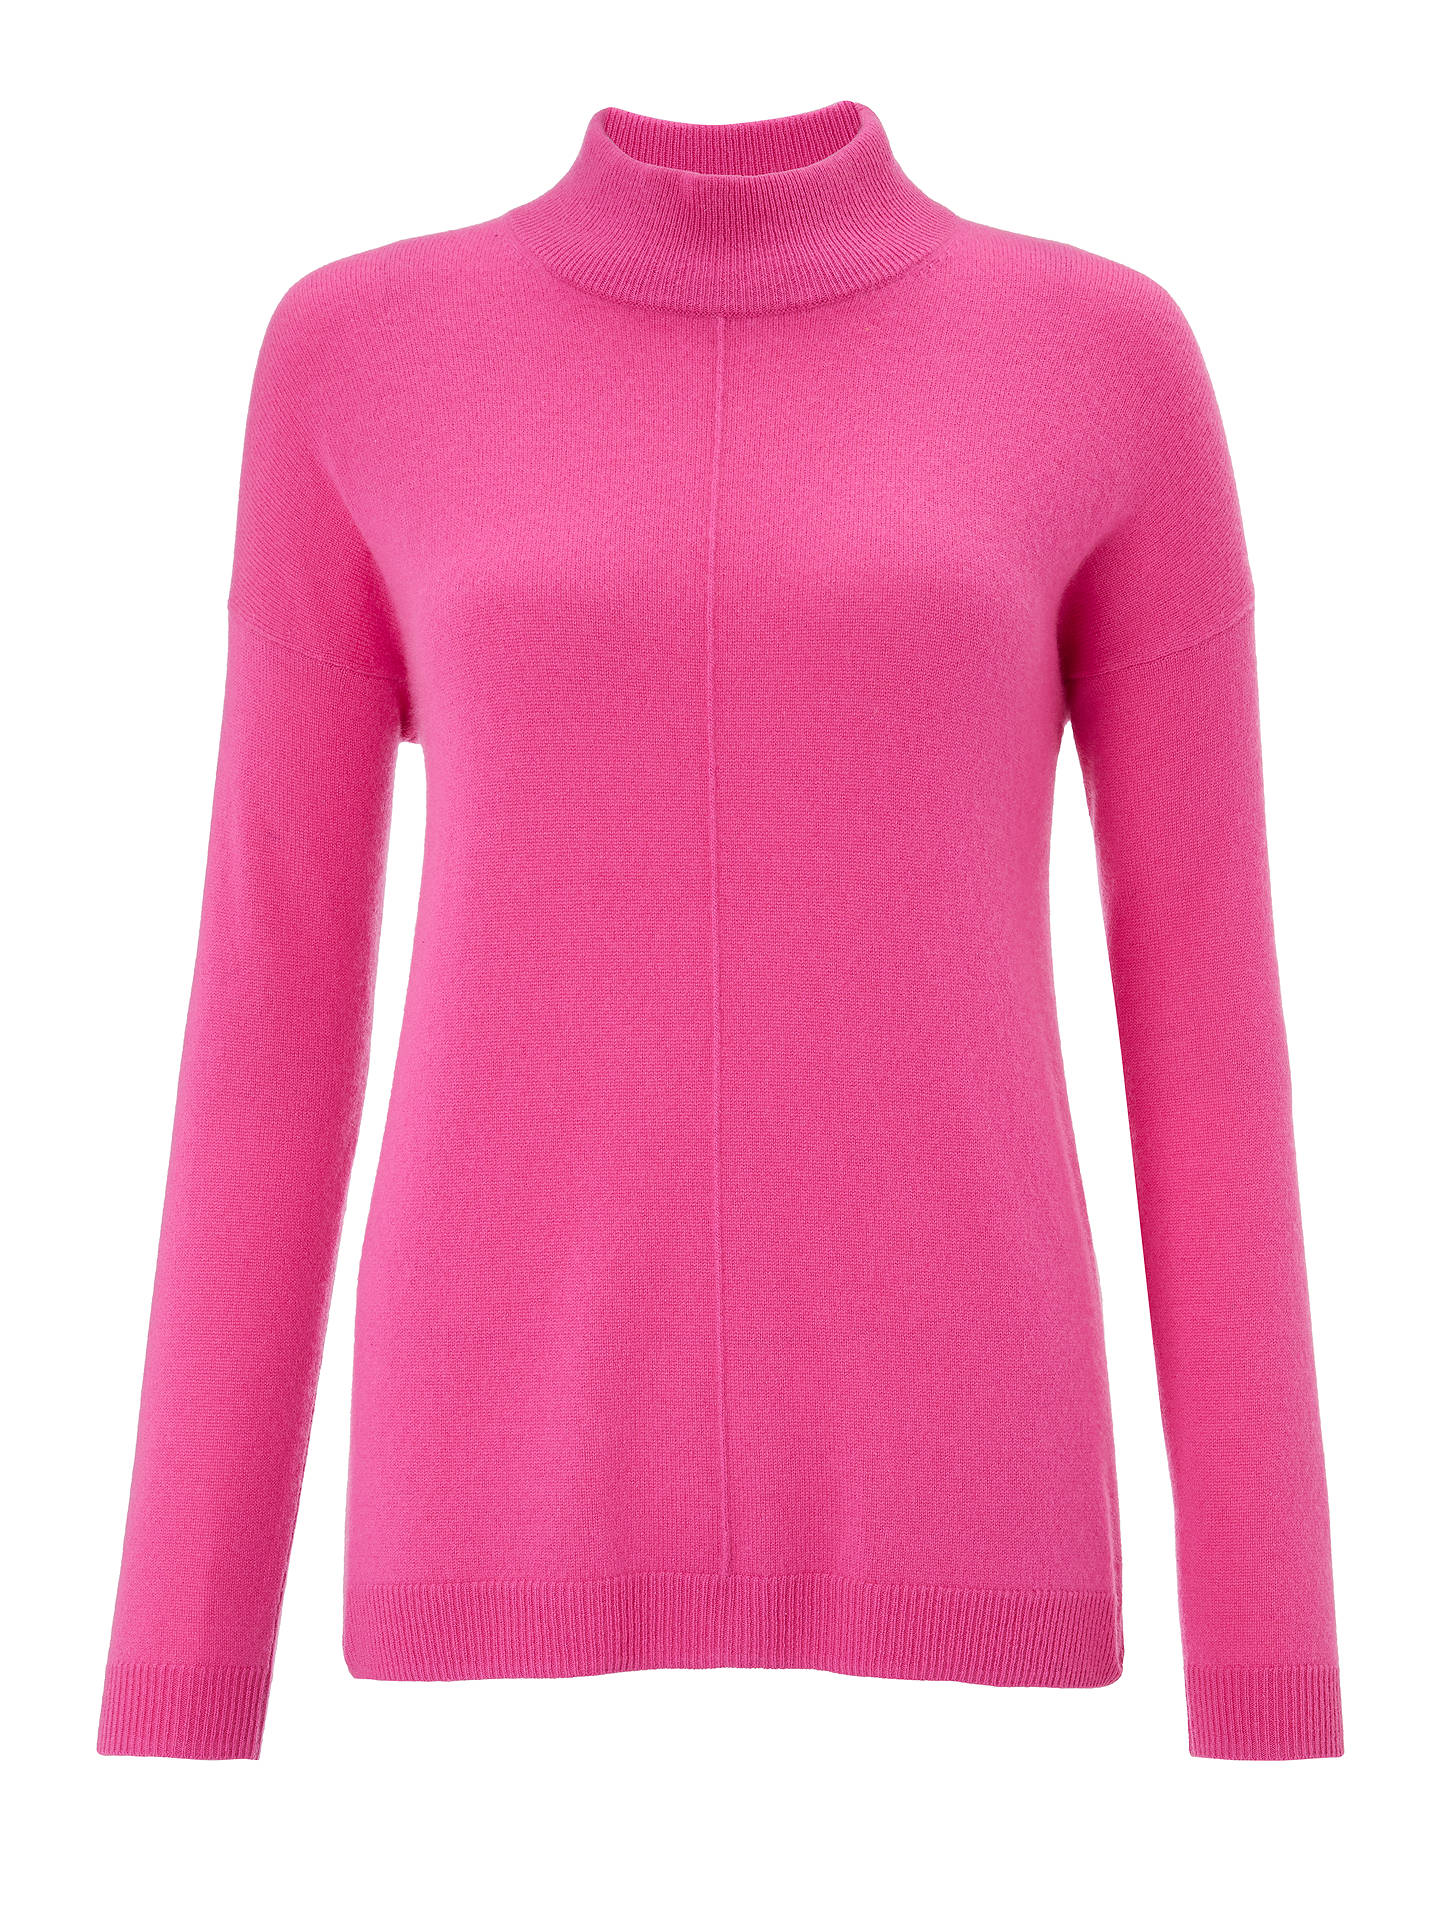 BuyJohn Lewis & Partners Cashmere Turtleneck Sweater, Raspberry, 8 Online at johnlewis.com